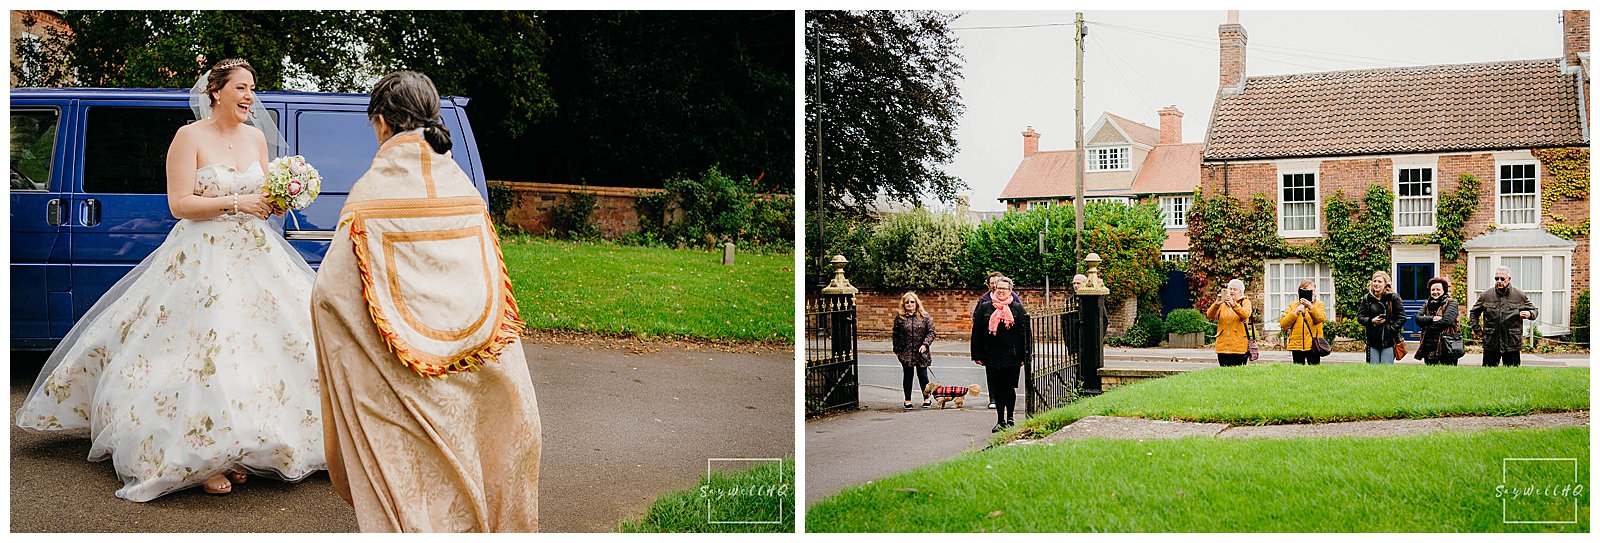 Lincoln wedding photographer - Bride arrives and is greeted by some wedding guests waiting outside the Church